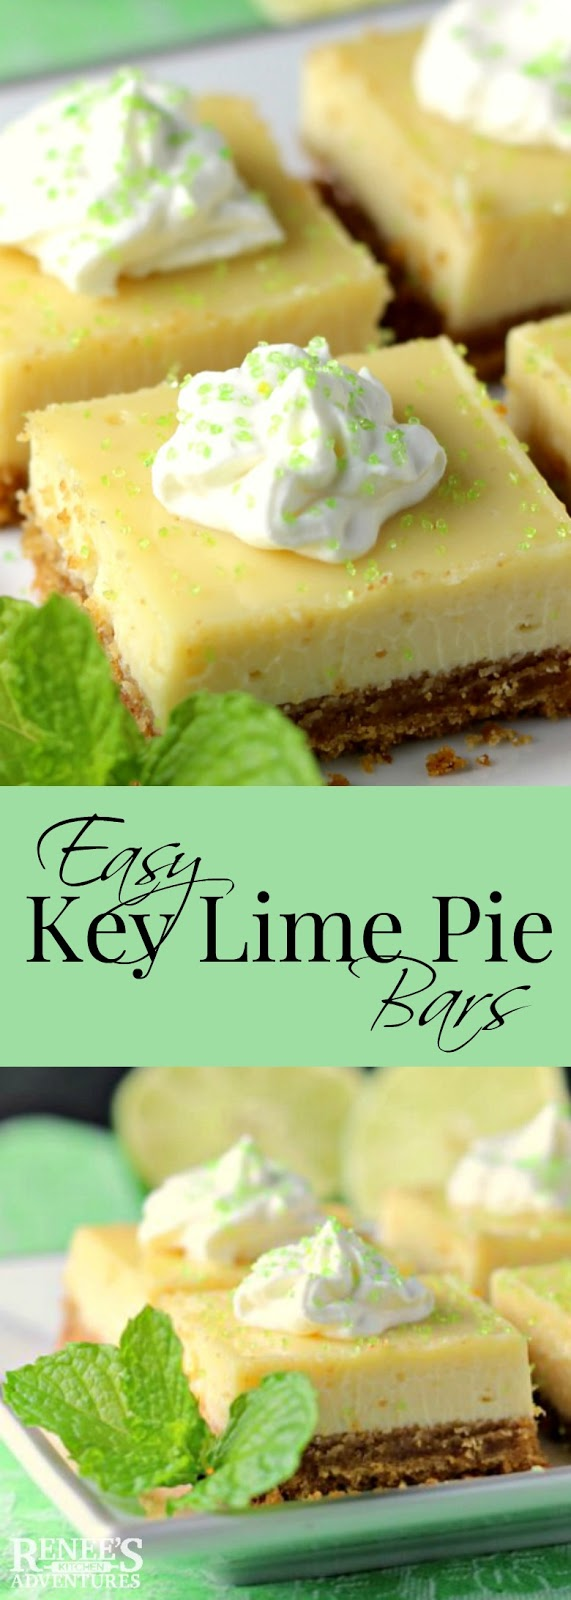 Easy Key Lime Pie Bars | Renee's Kitchen Adventures - easy dessert recipe for key lime pie bars made with key lime juice, condensed milk and eggs. #dessert #lime